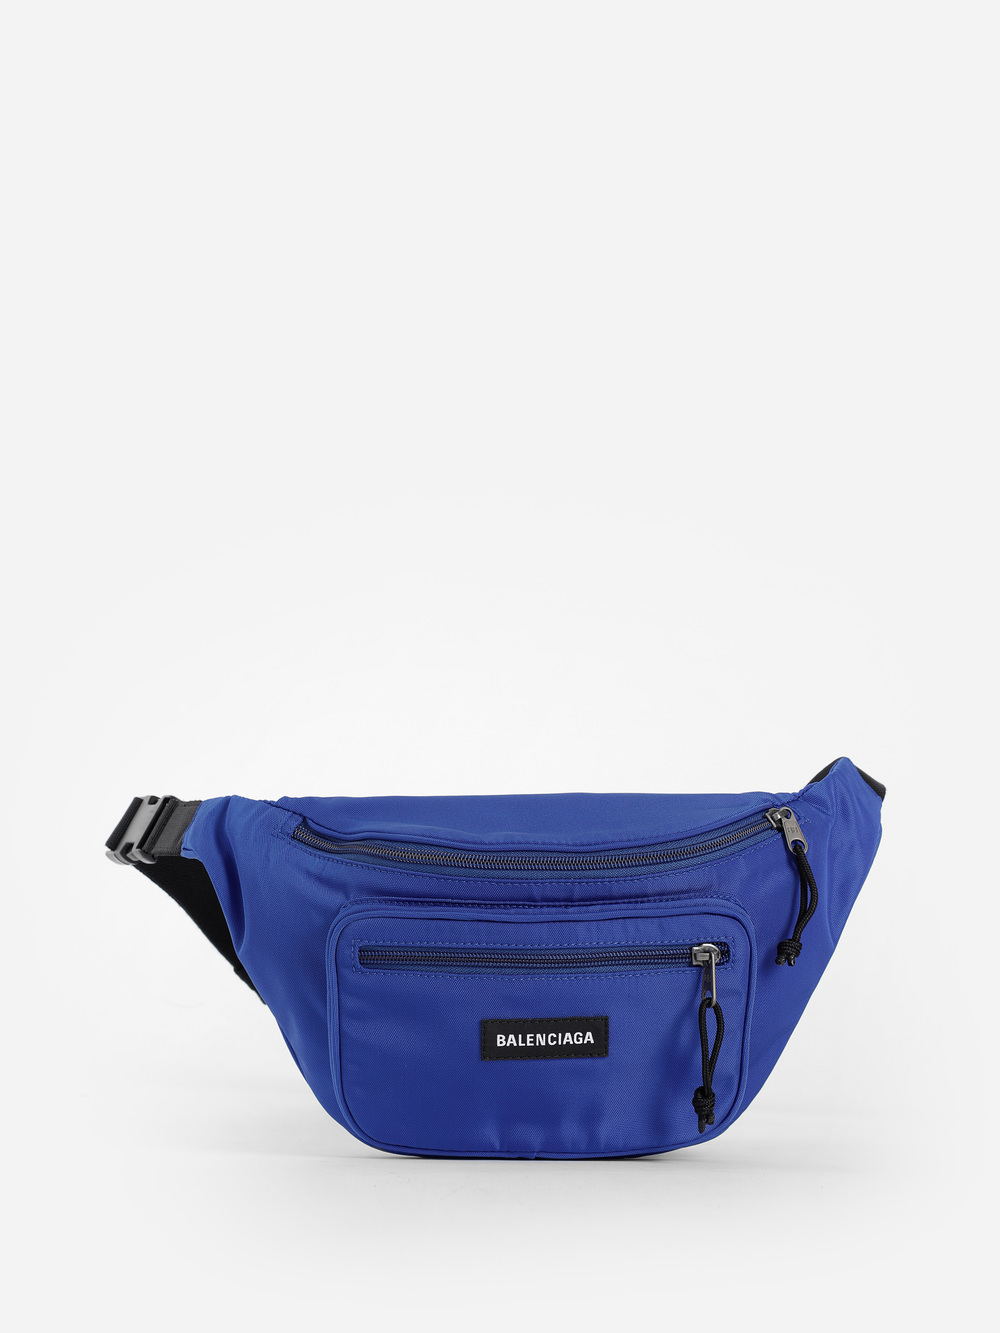 find workmanship new style latest collection Balenciaga Fanny Packs in Blue